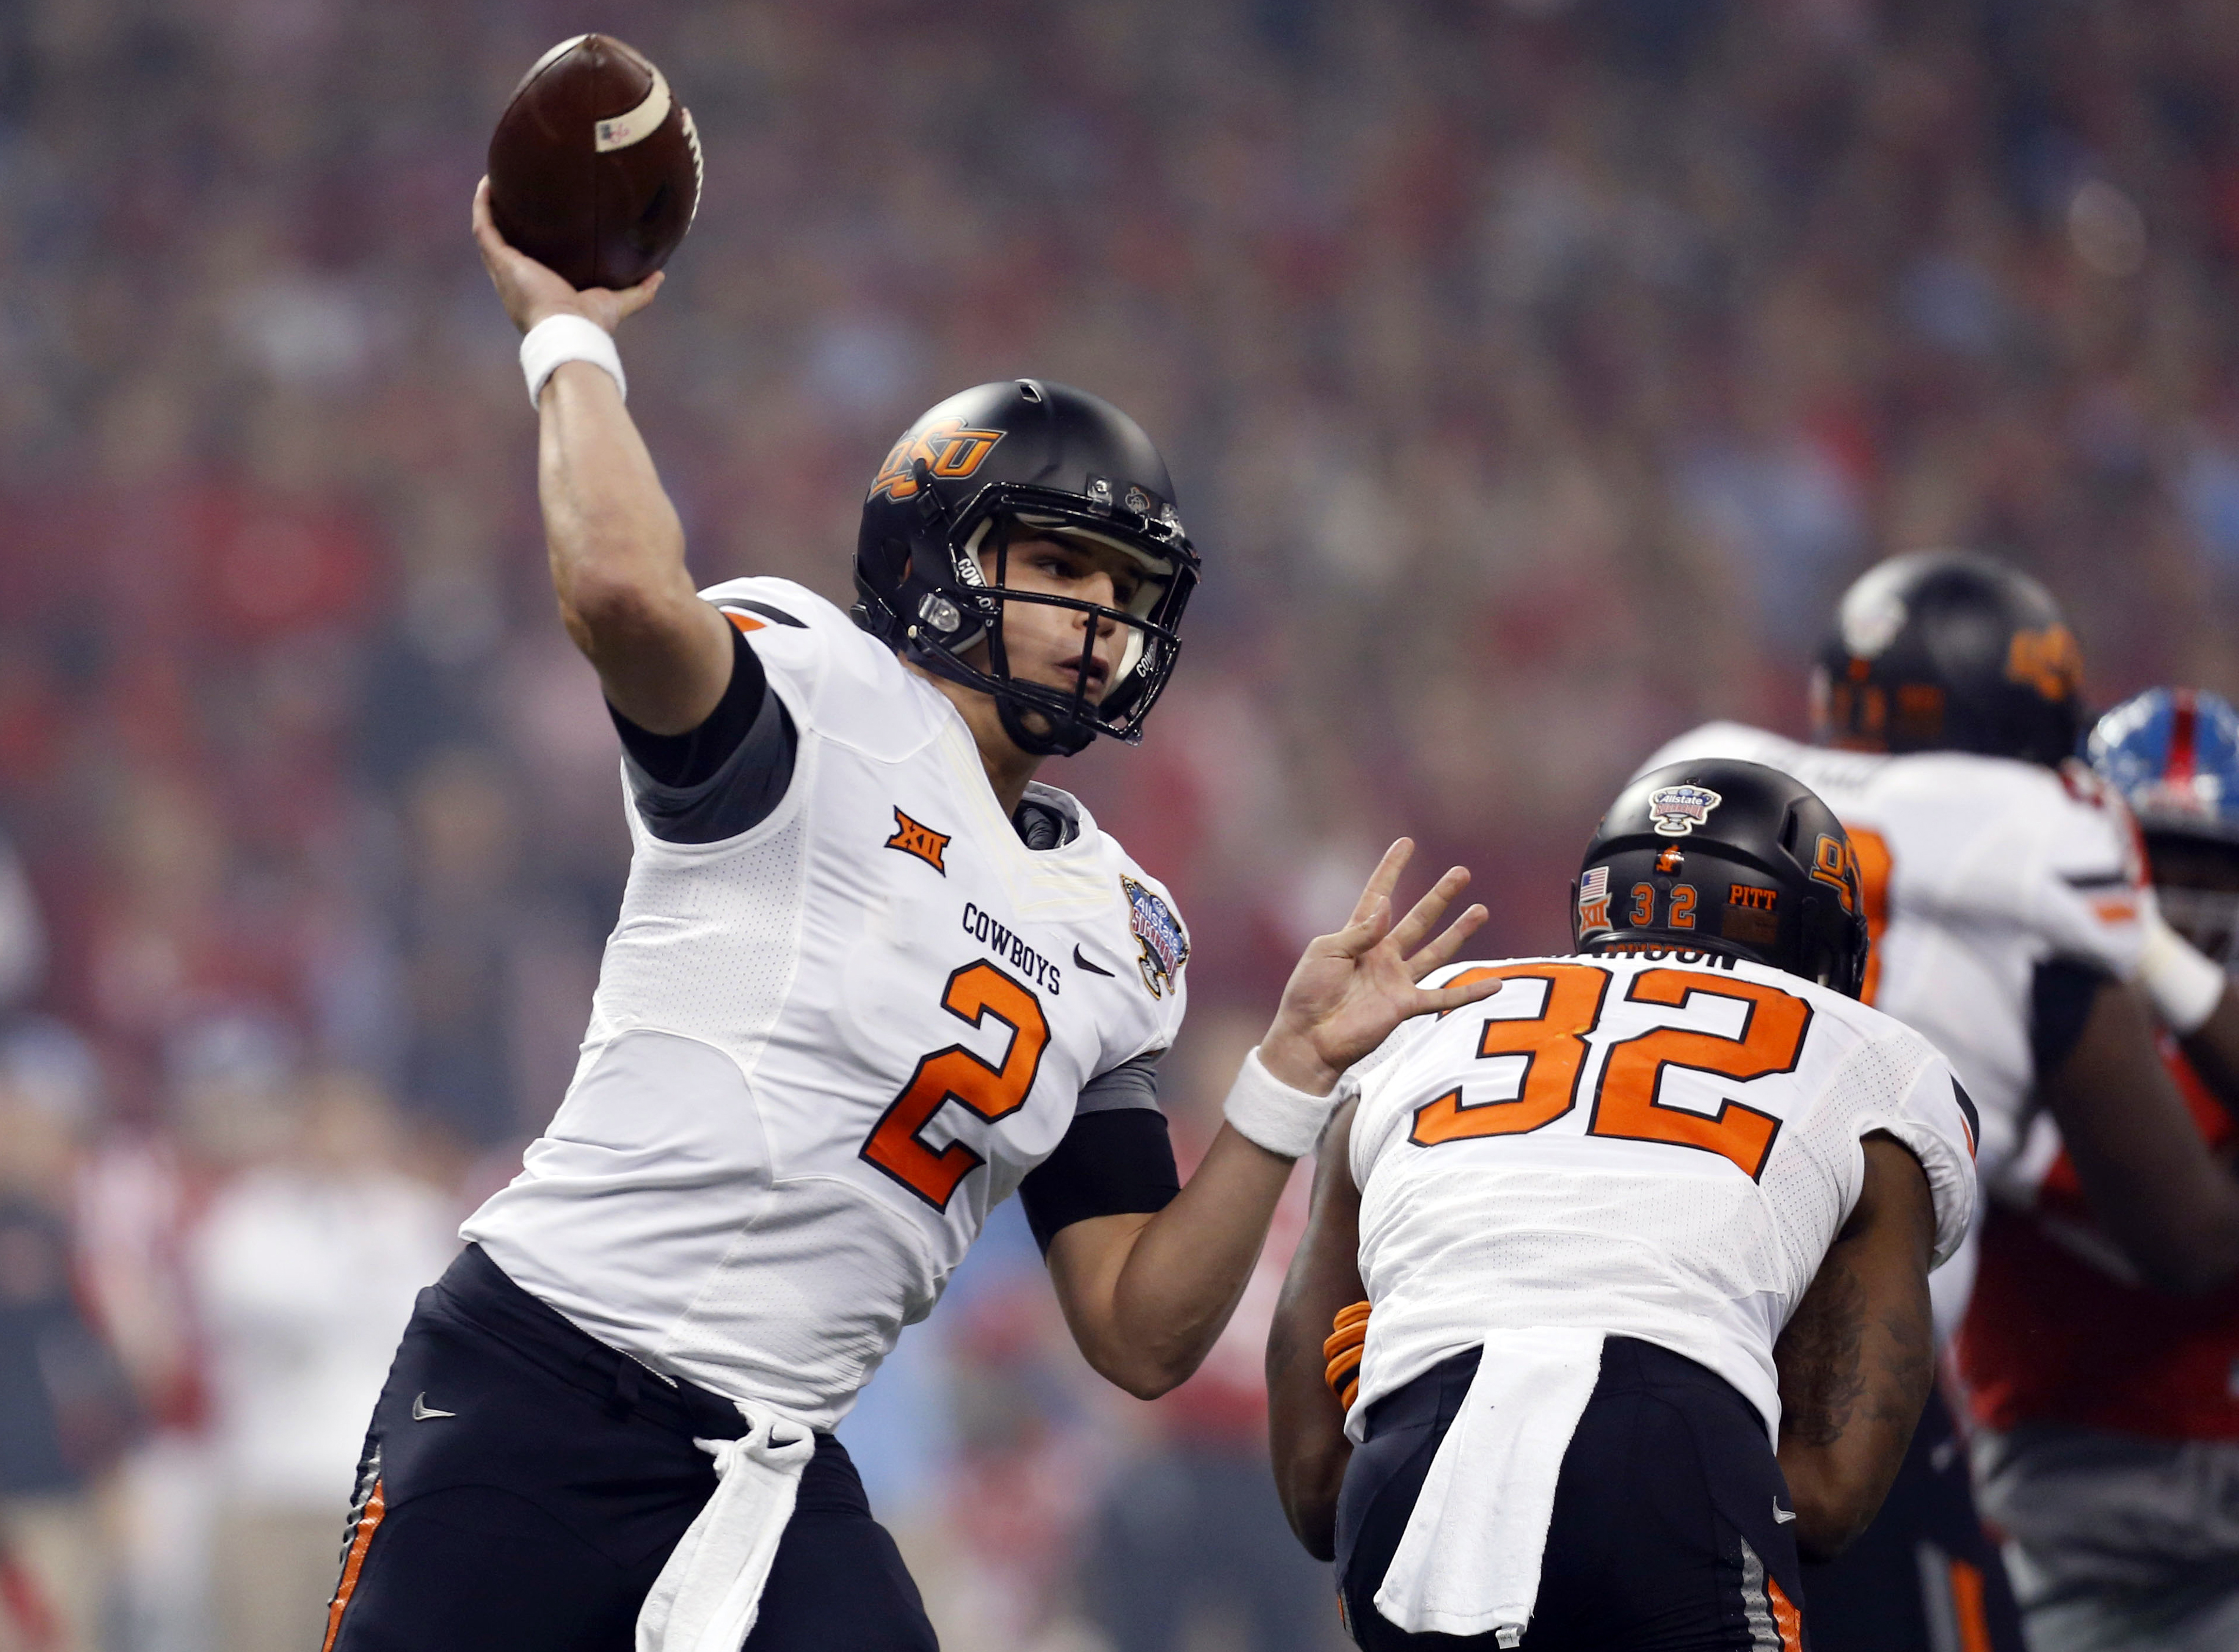 FILE - In this Jan. 1, 2016 file photo, Oklahoma State quarterback Mason Rudolph throws a pass durring the first half of the Sugar Bowl college football game in New Orleans. Rudolph heads into his junior year with a plethora of weapons around him and high